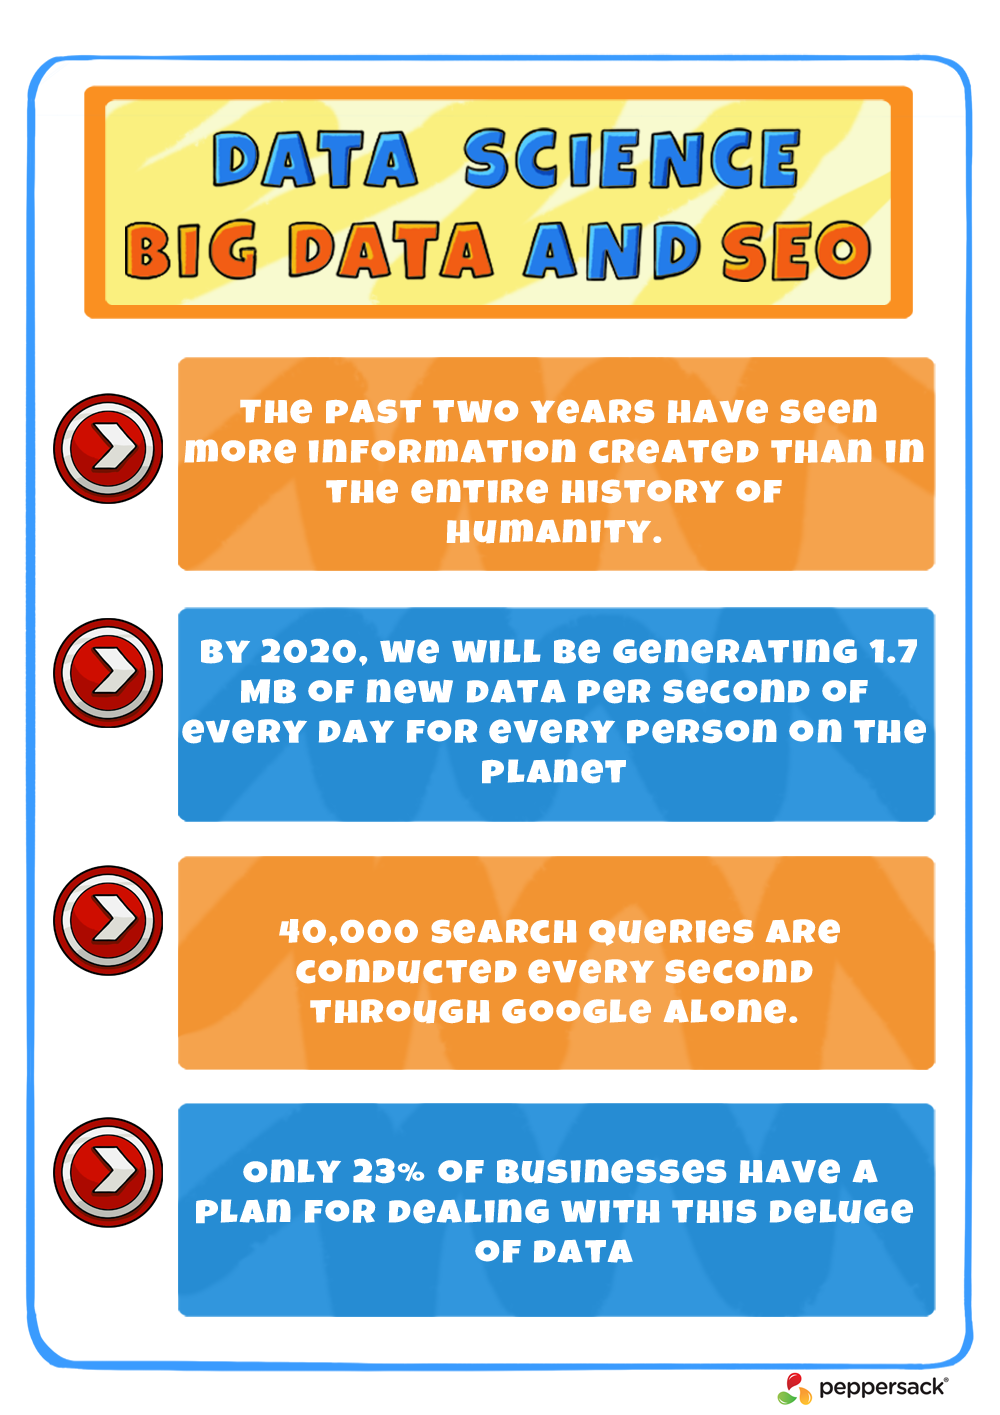 Data Science, Big Data and SEO